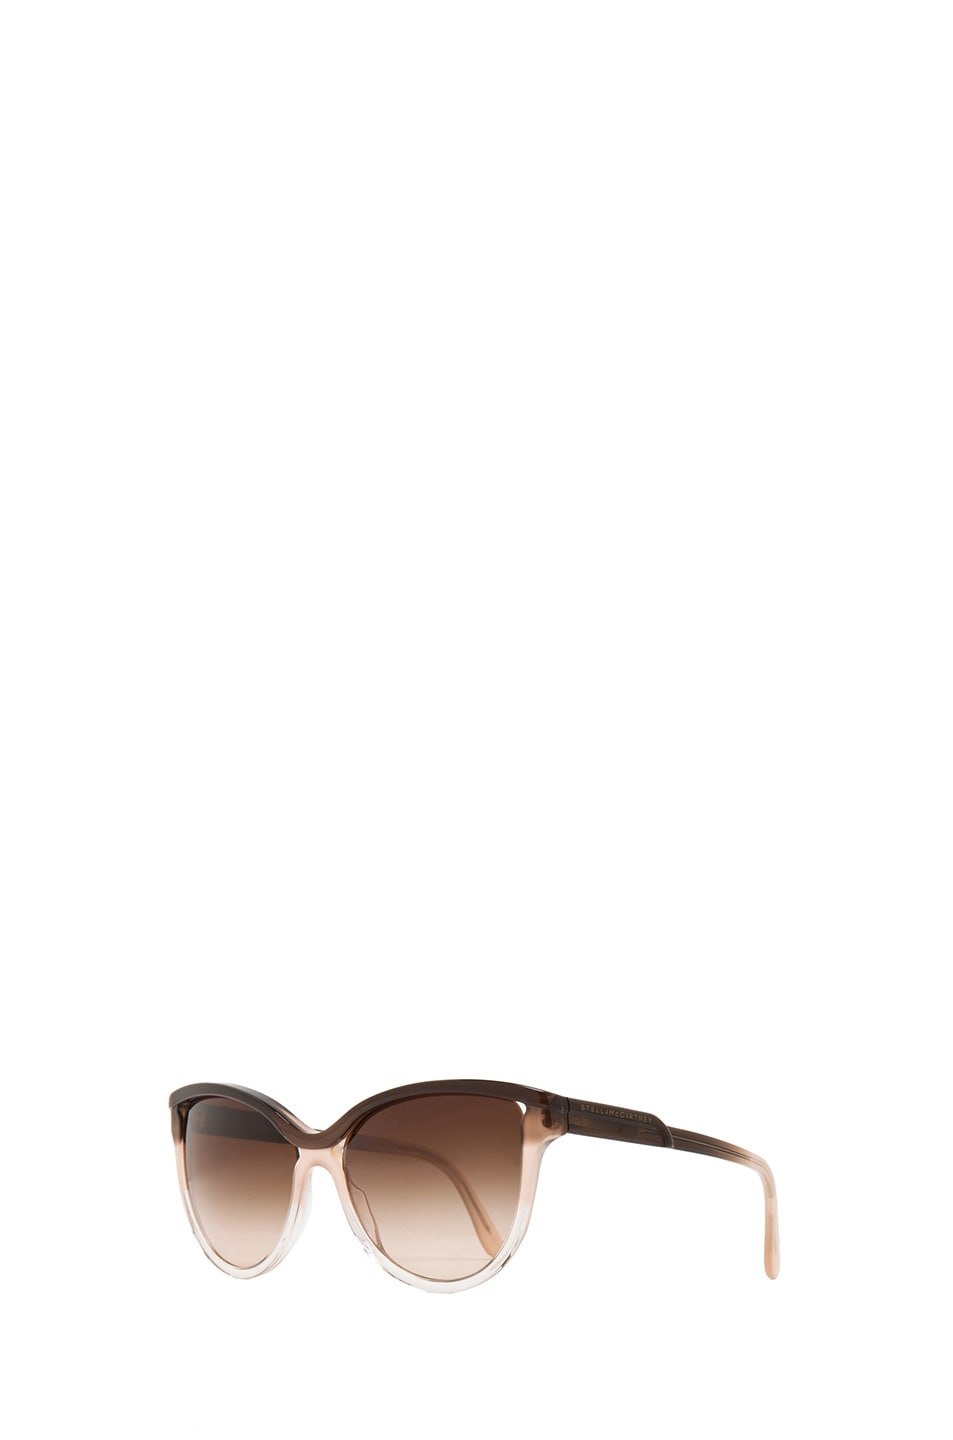 Image 2 of Stella McCartney Rounded Cat Eye Sunglasses in Brown Fade